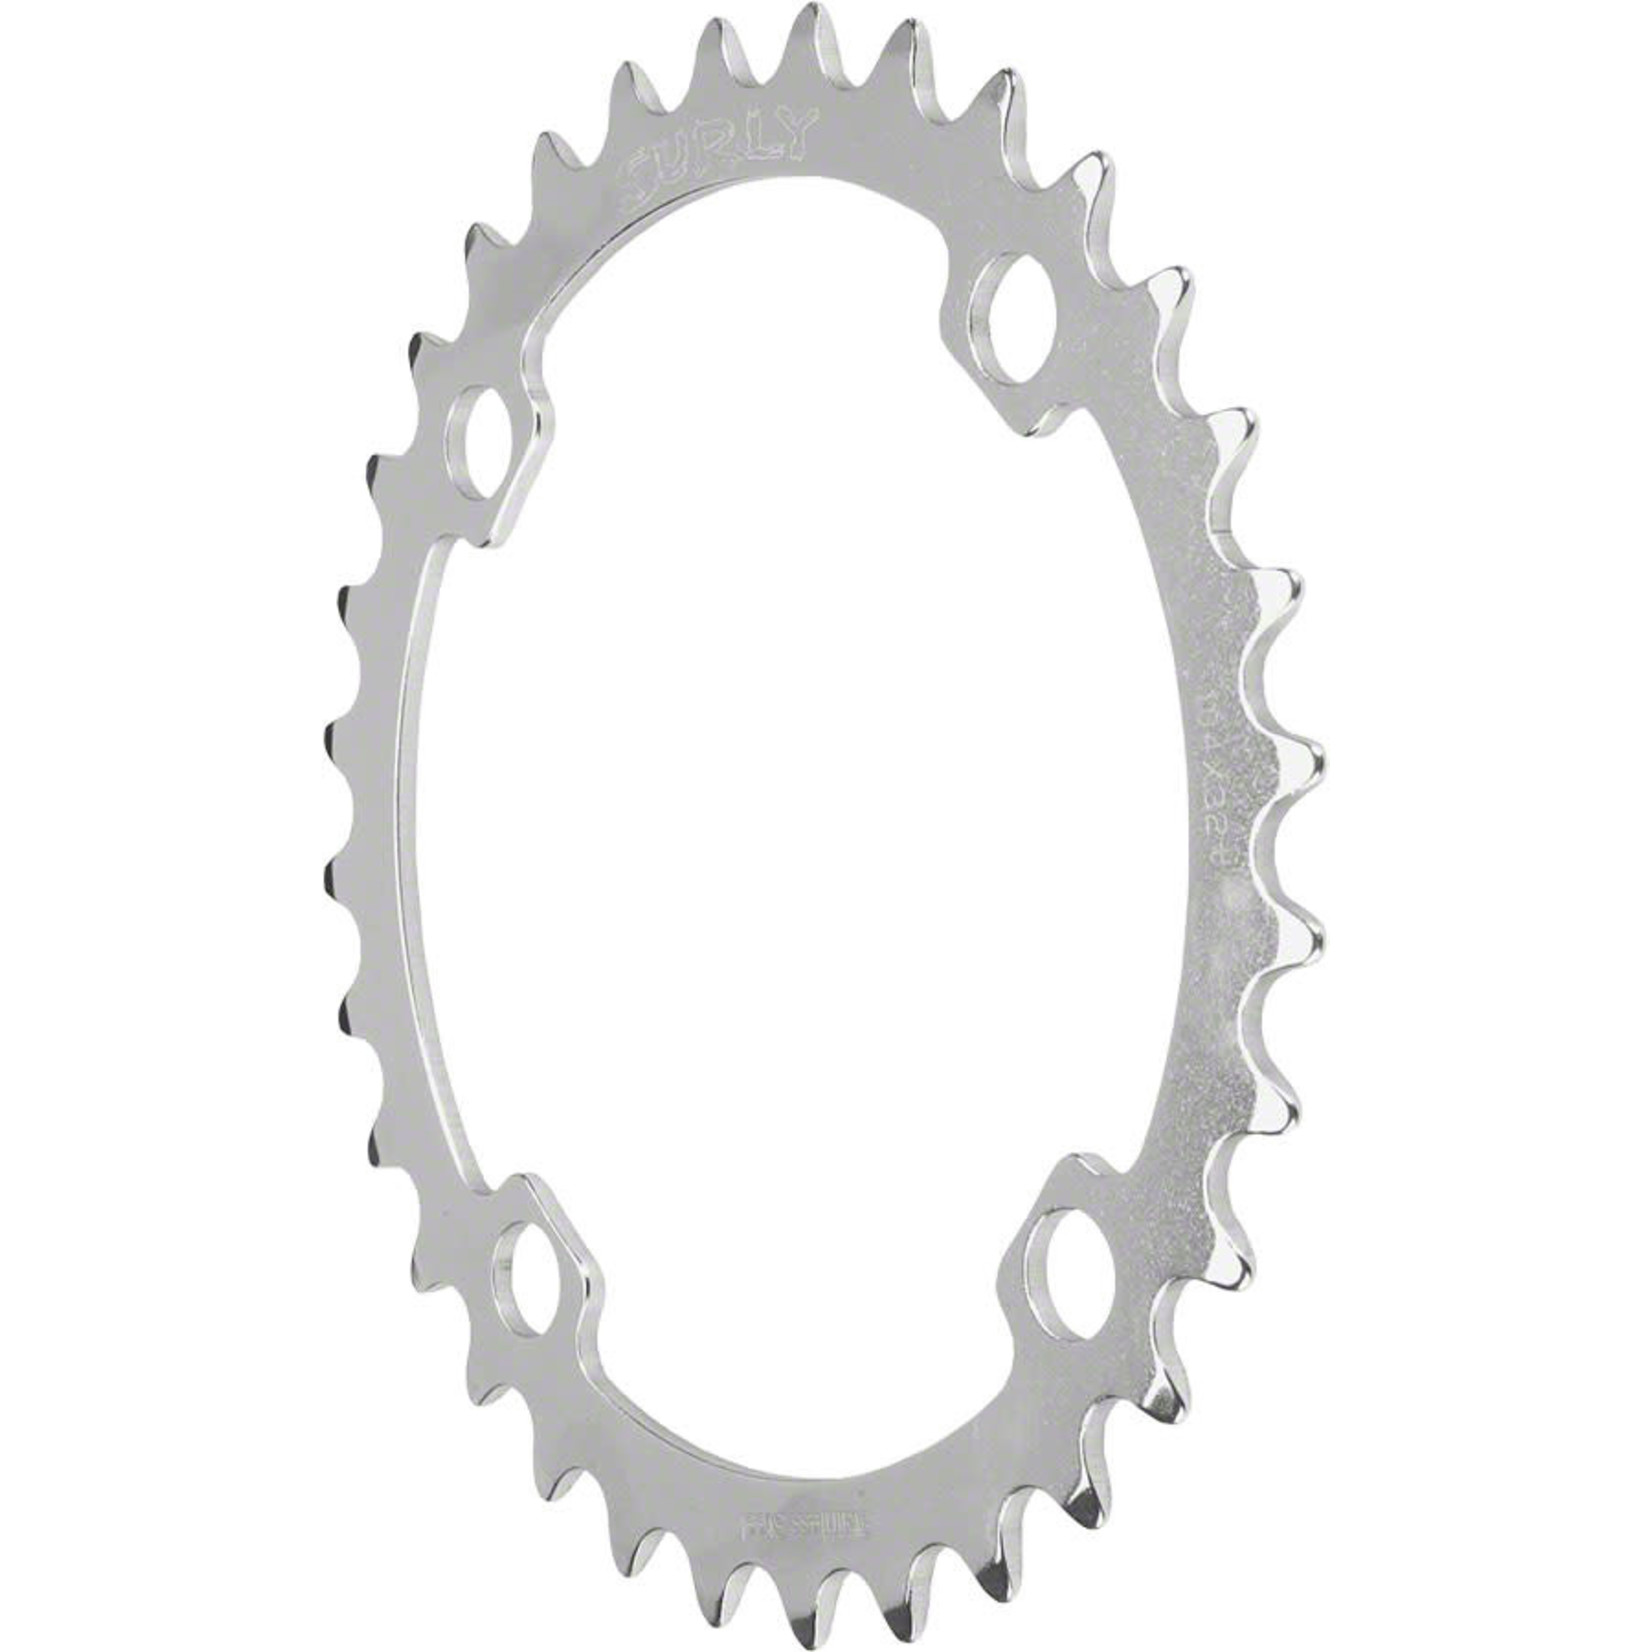 Surly Surly Stainless Steel Ring 34t x 104mm